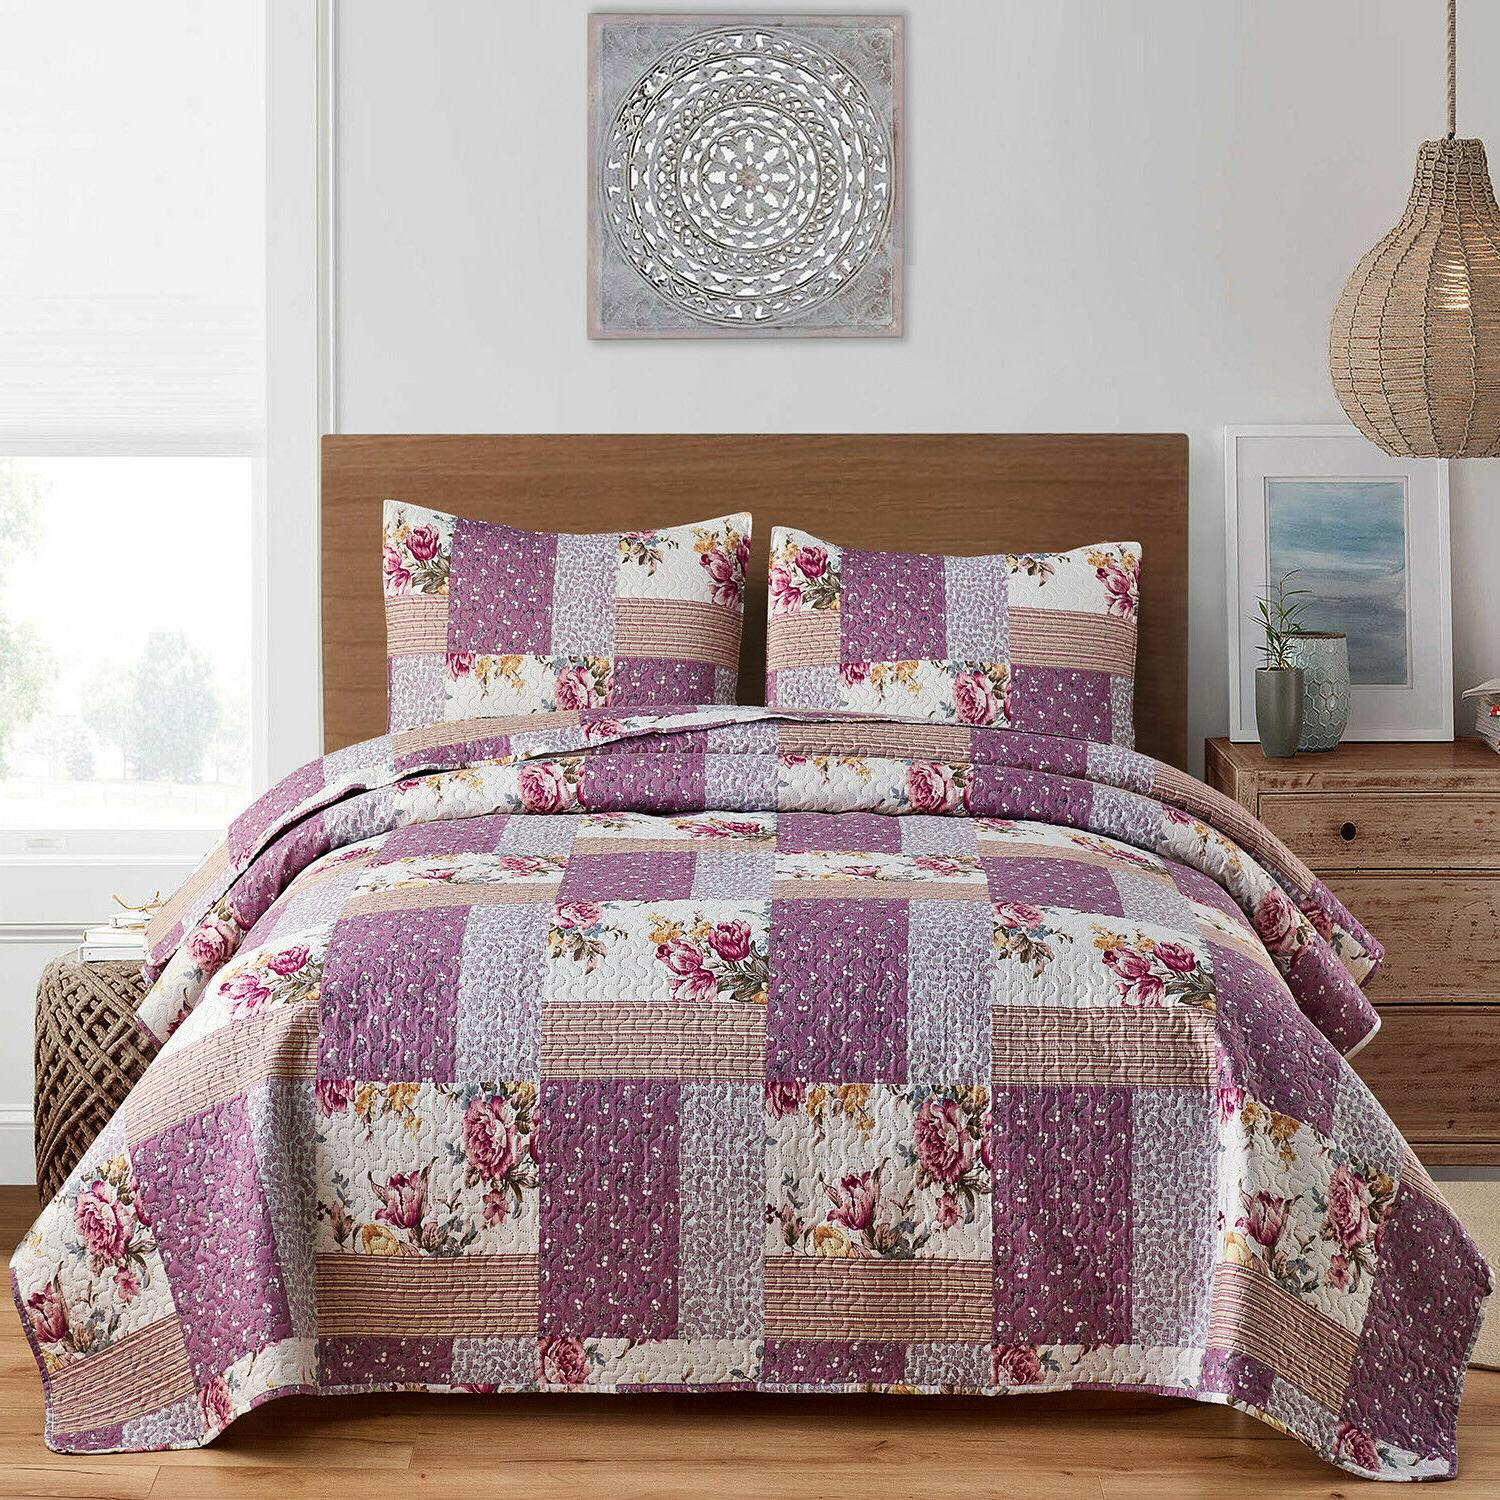 3pc plaid printed reversible bedspread quilt set